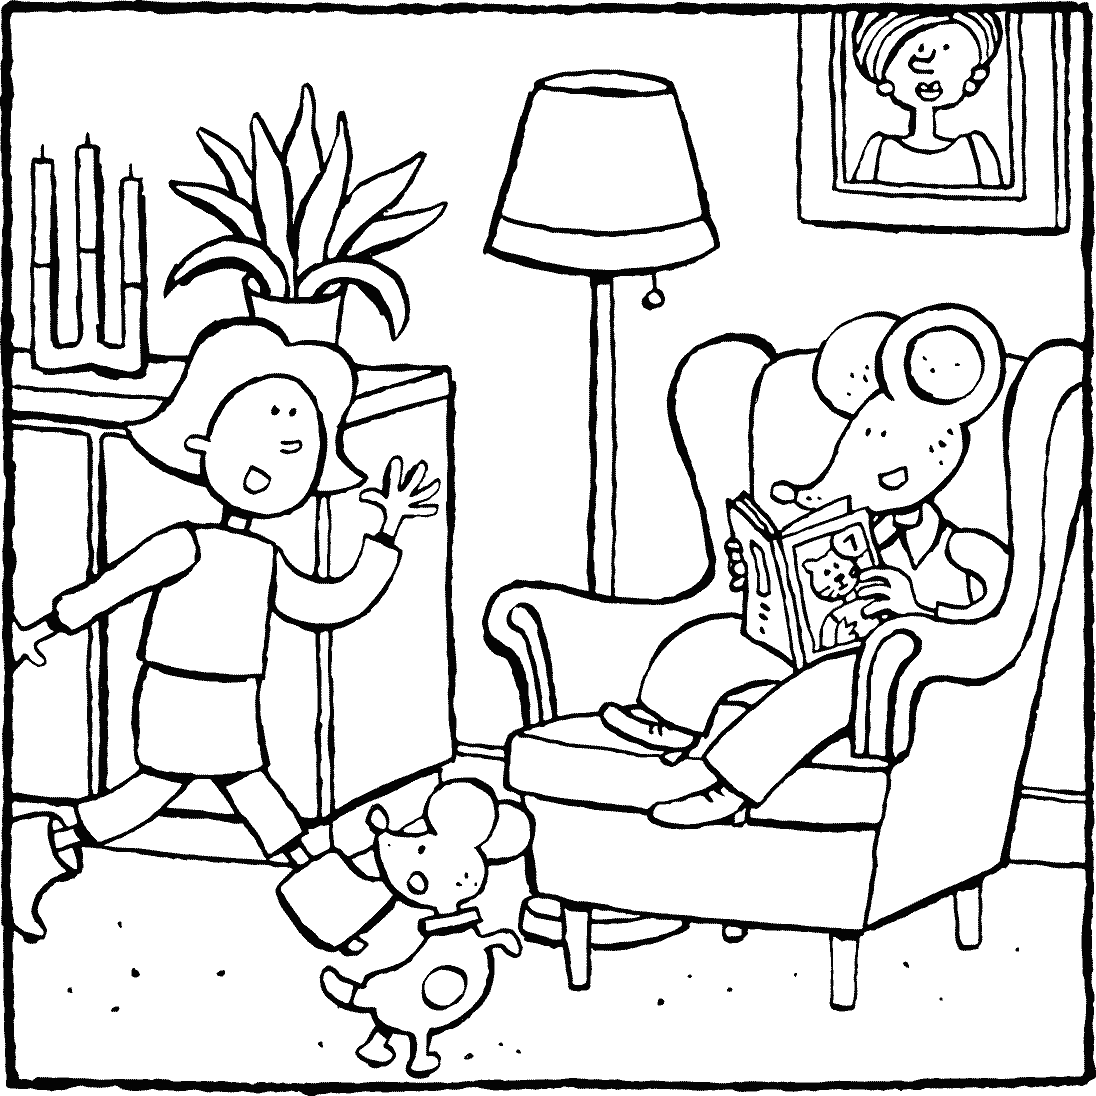 Emma goes to Thomas colouring page drawing picture 01k